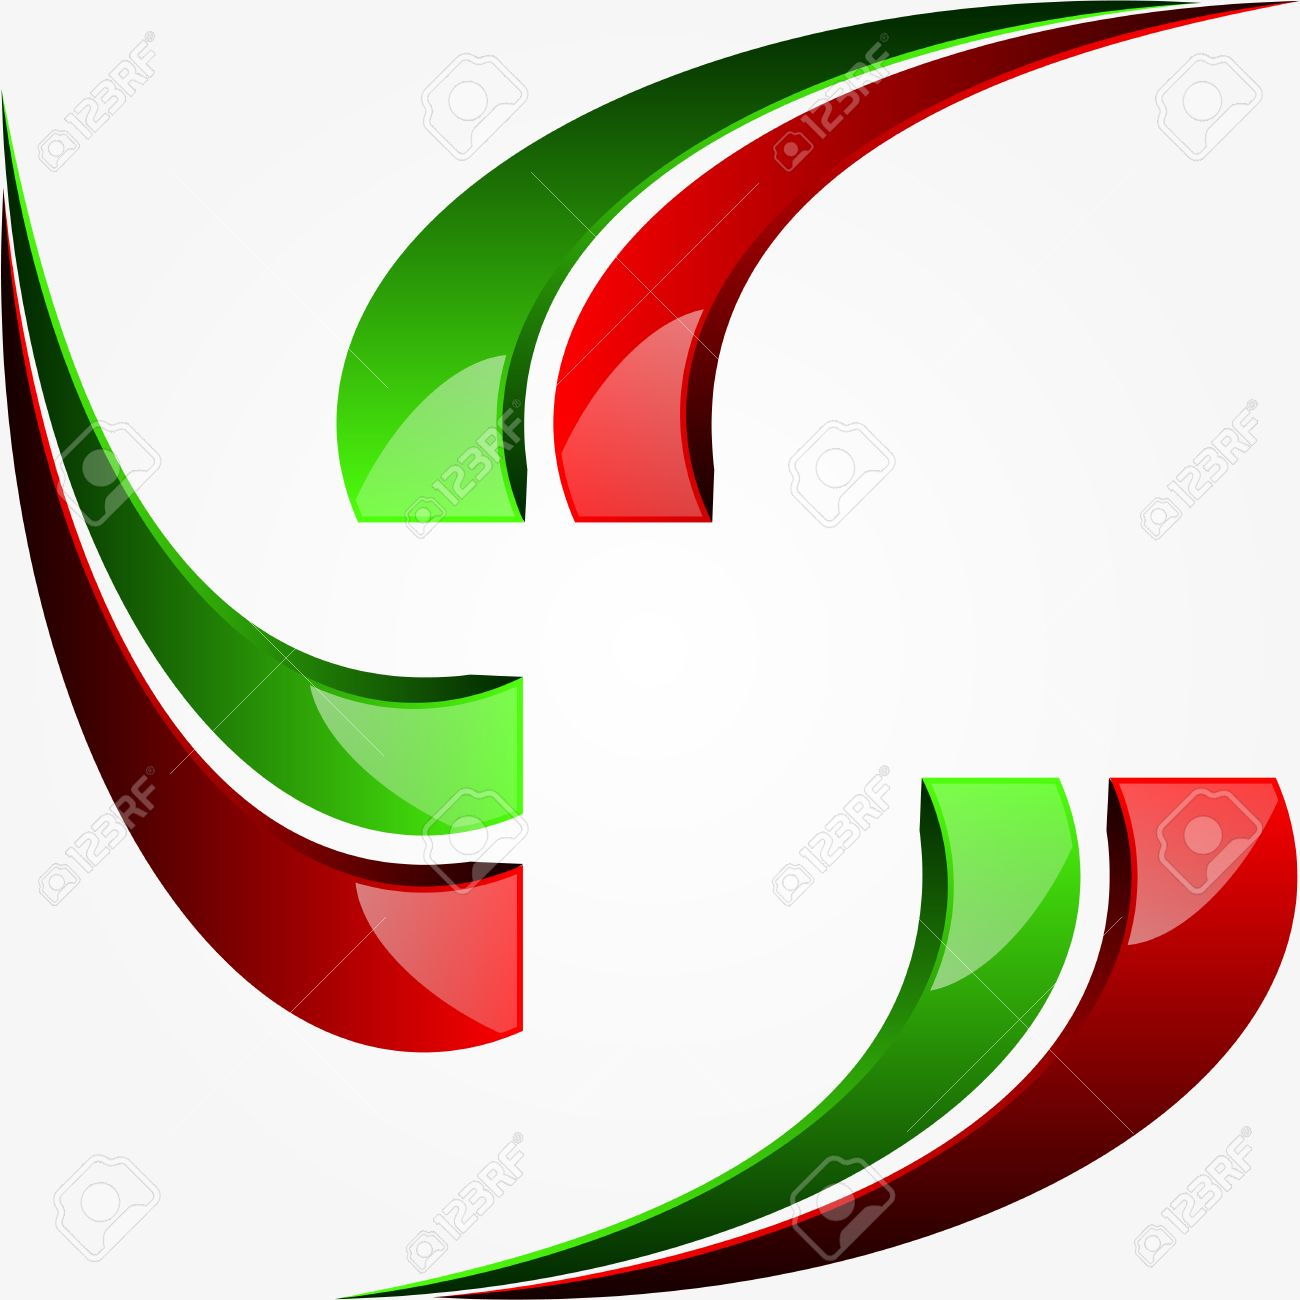 1300x1300 Graphic Design With The Colors Of The Italian Flag Royalty Free